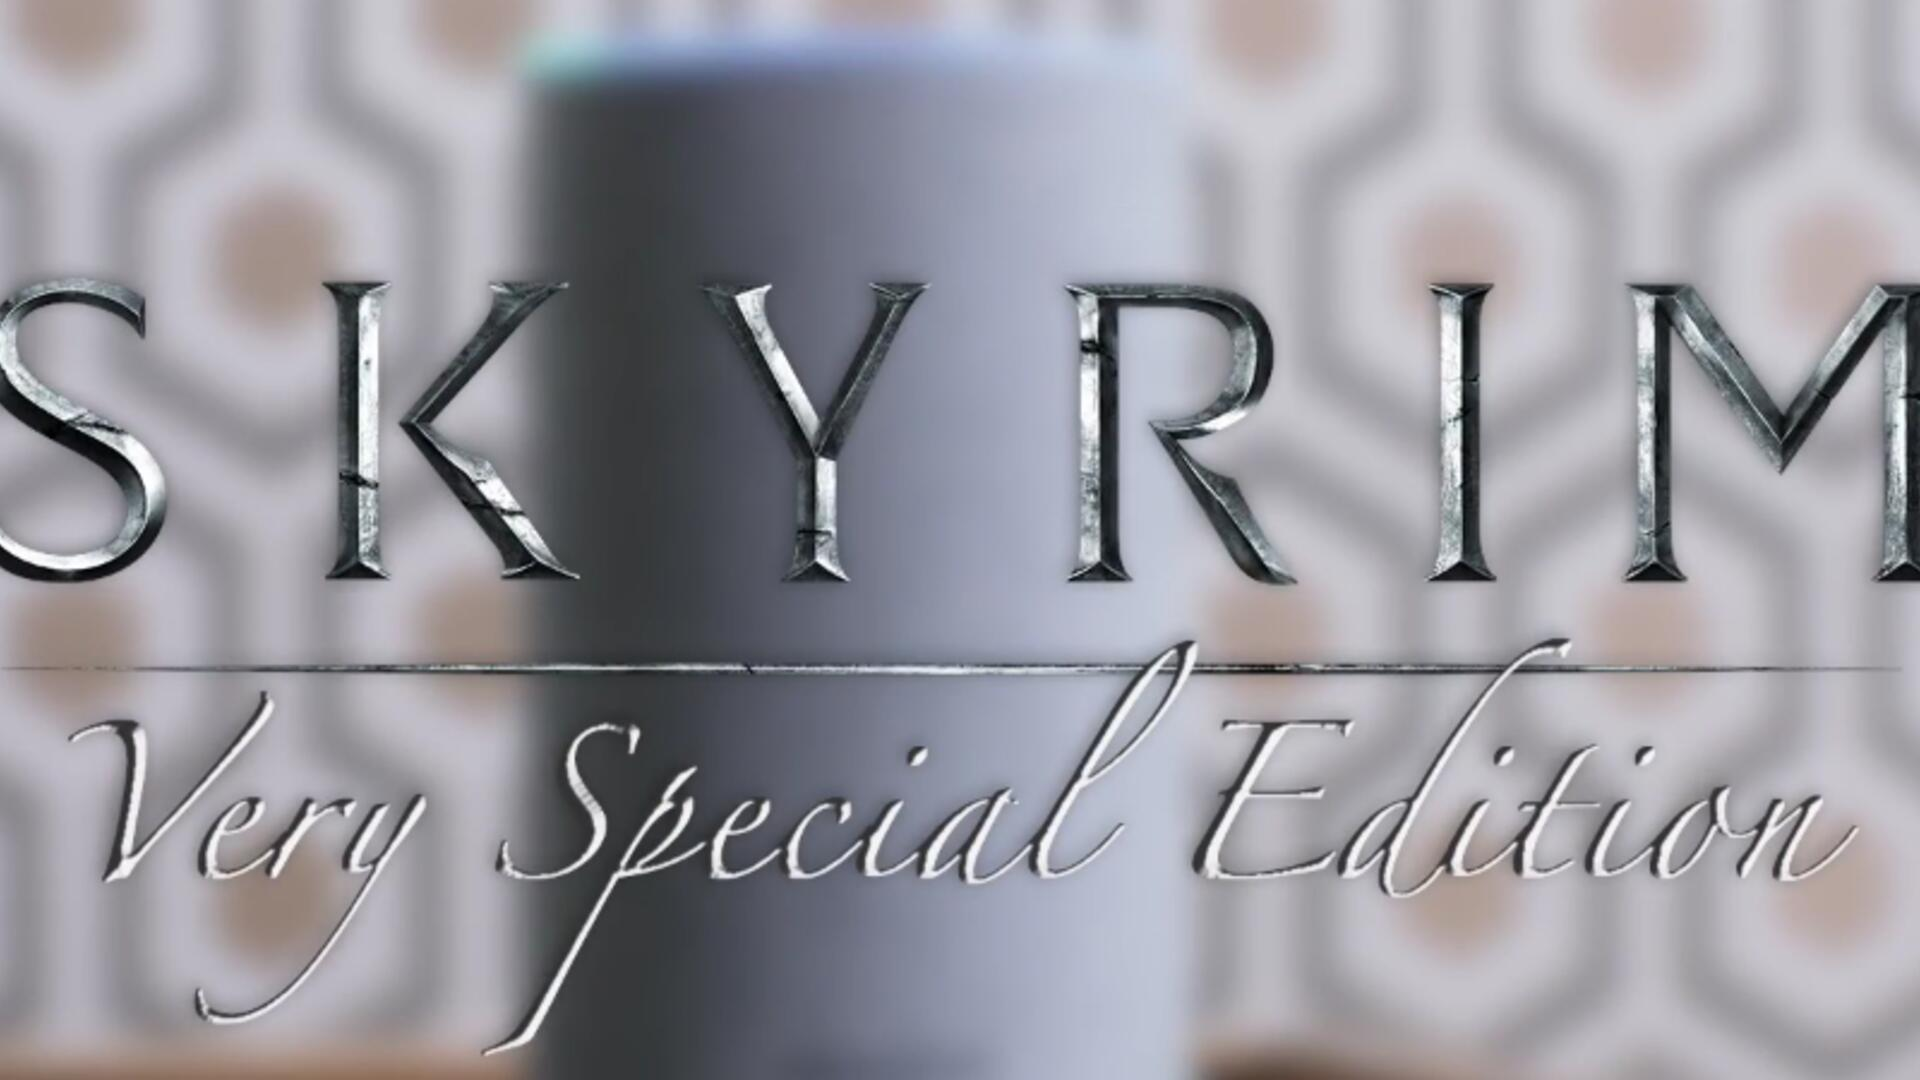 Skyrim: Very Special Edition is Bethesda's Very Good Joke About Bringing Skyrim to Literally Everything [Update: It's Real]